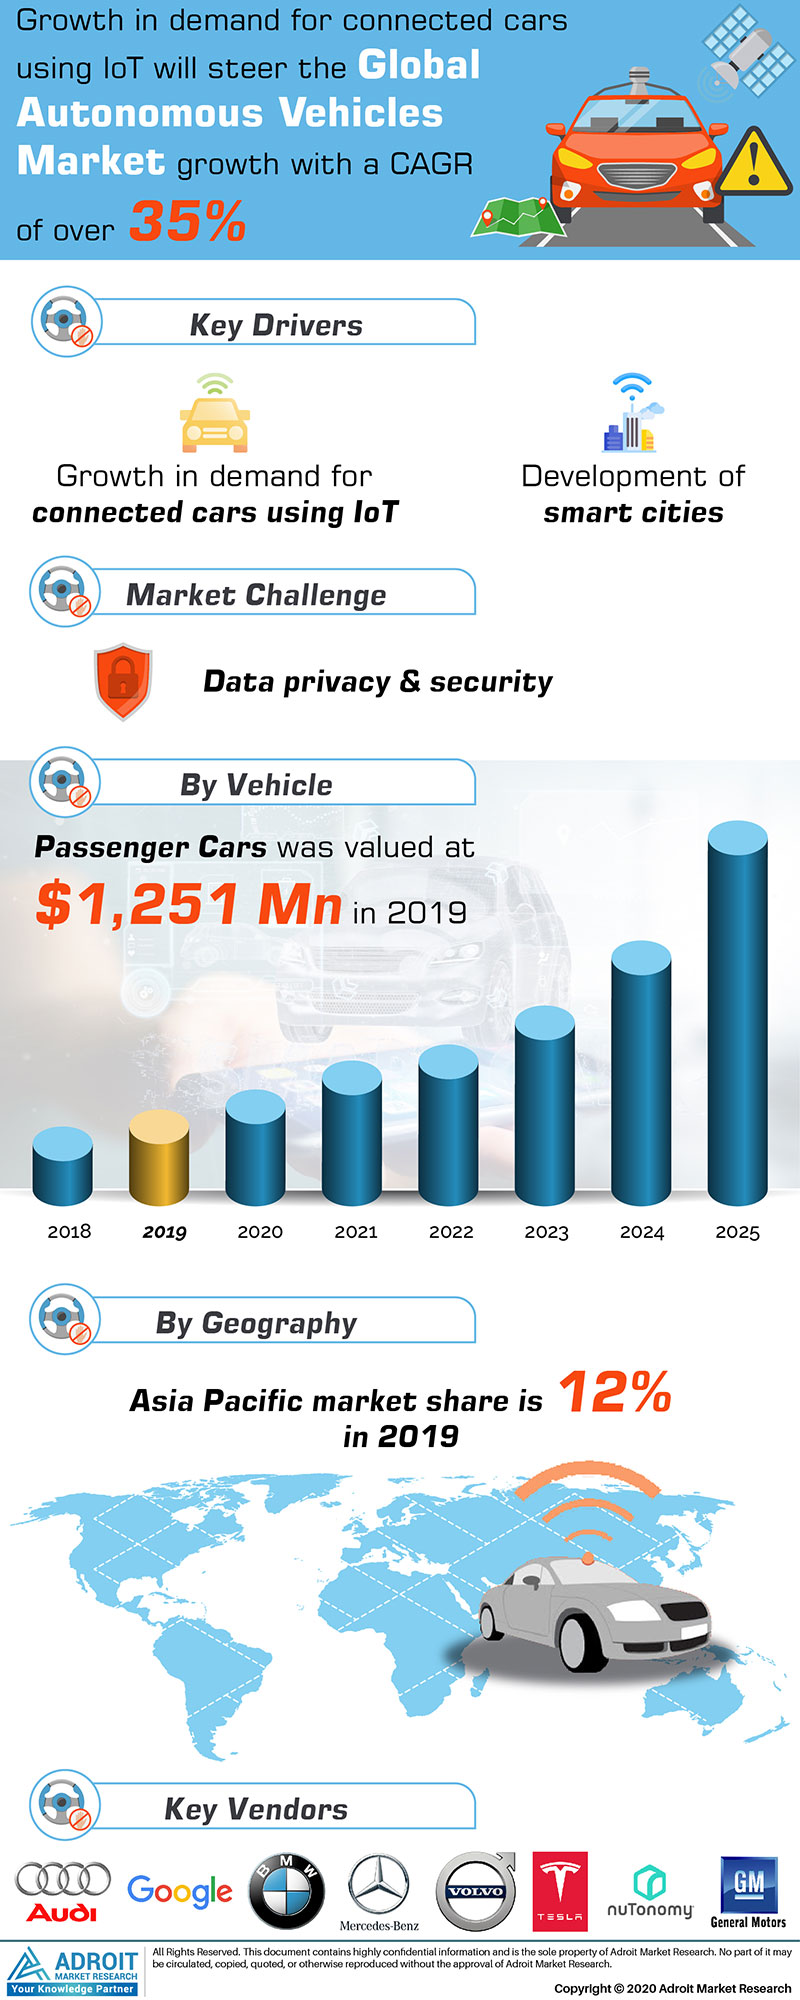 Global Autonomous Vehicle Market Size 2018 By Product Type, Formulation, End-user, Region and Forecast 2019 to 2025